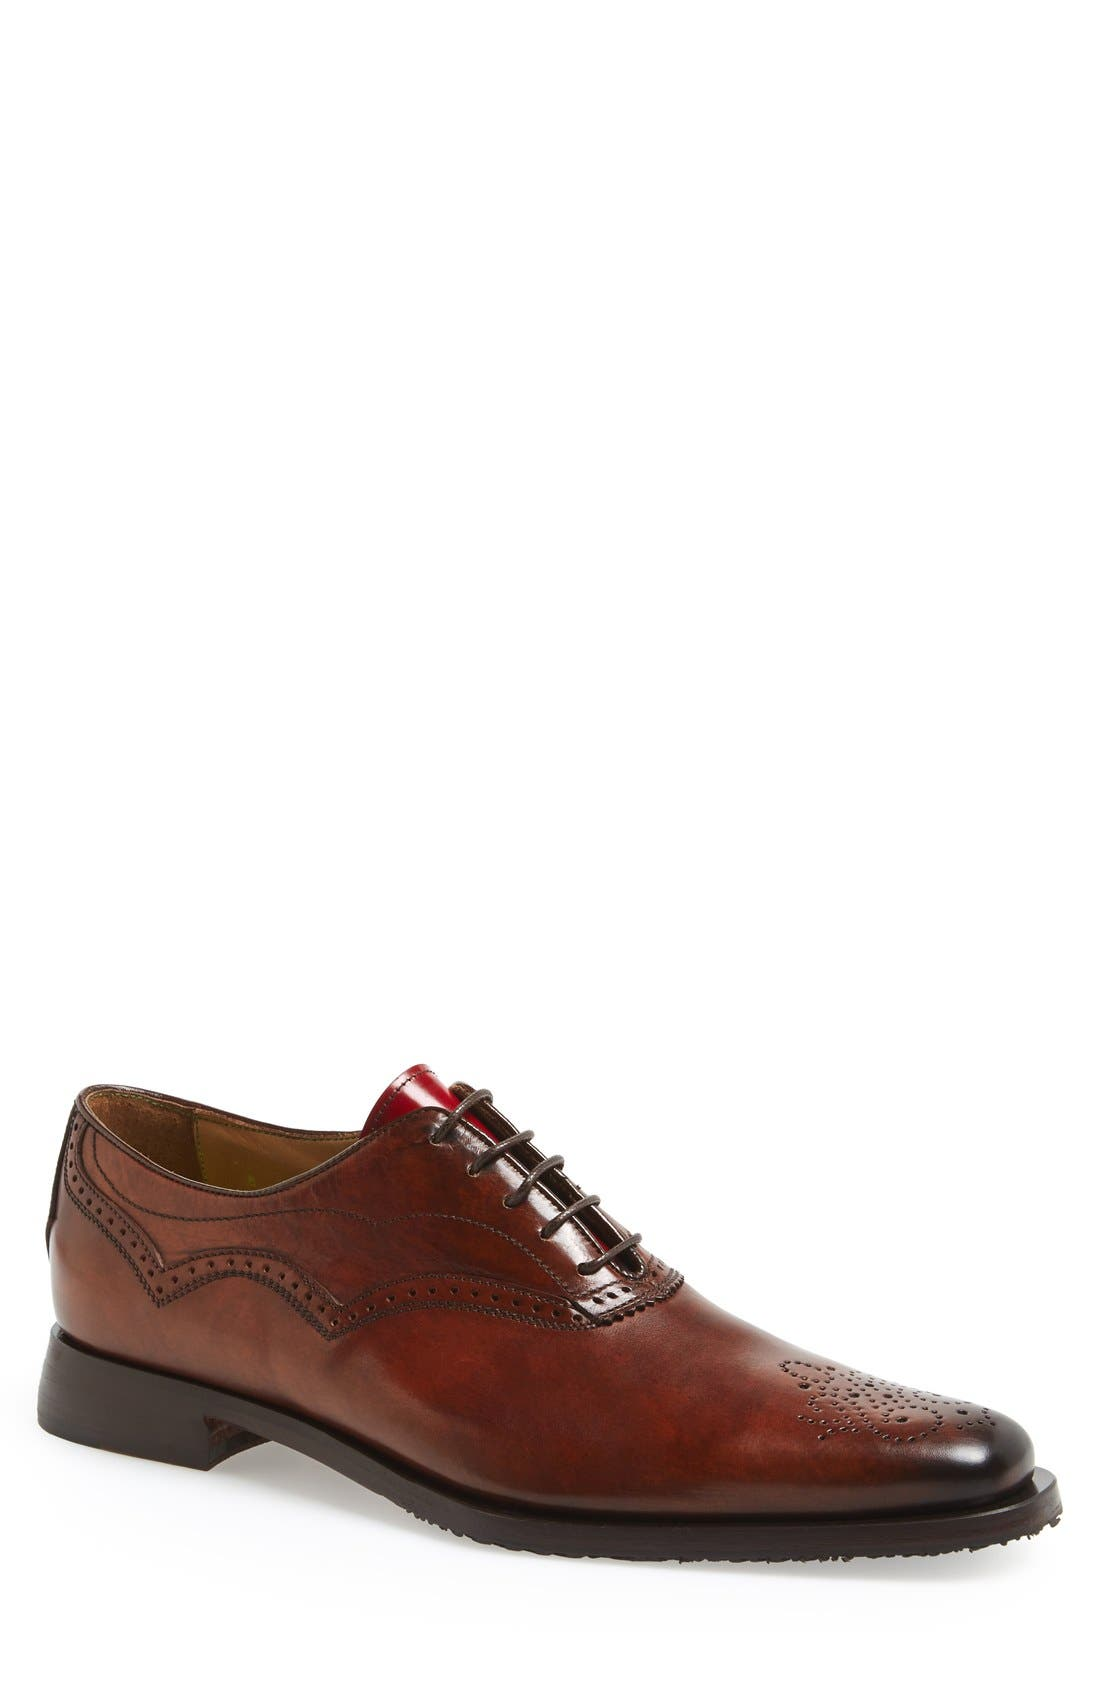 Main Image - OLIVER SWEENEY PICOLIT CURVE BROGUE OXFORD